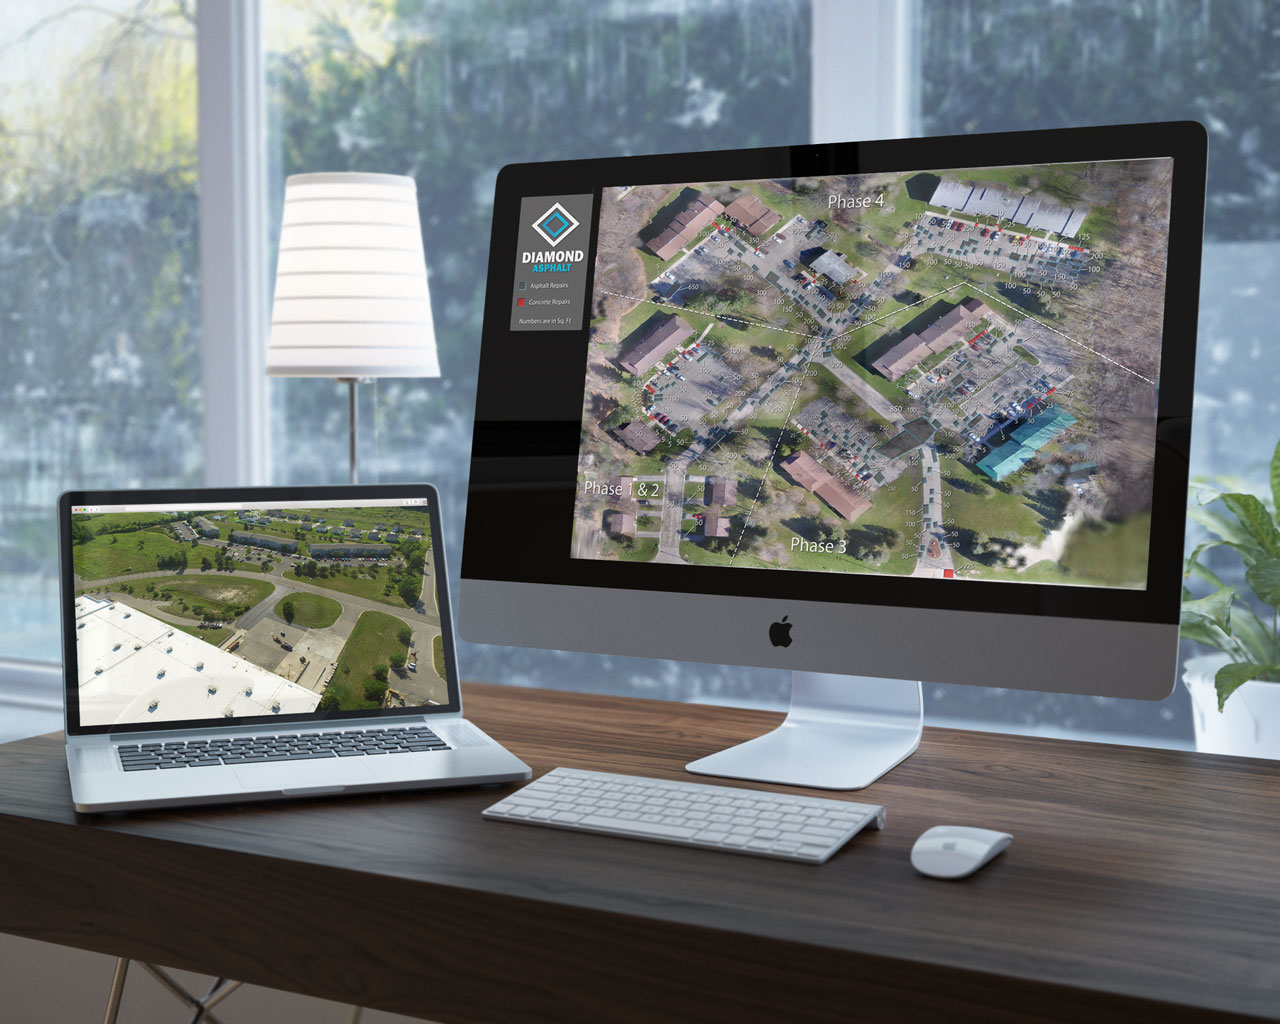 Image of Diamond repair map on an Imac and laptop, detailing parking lot repair plans.